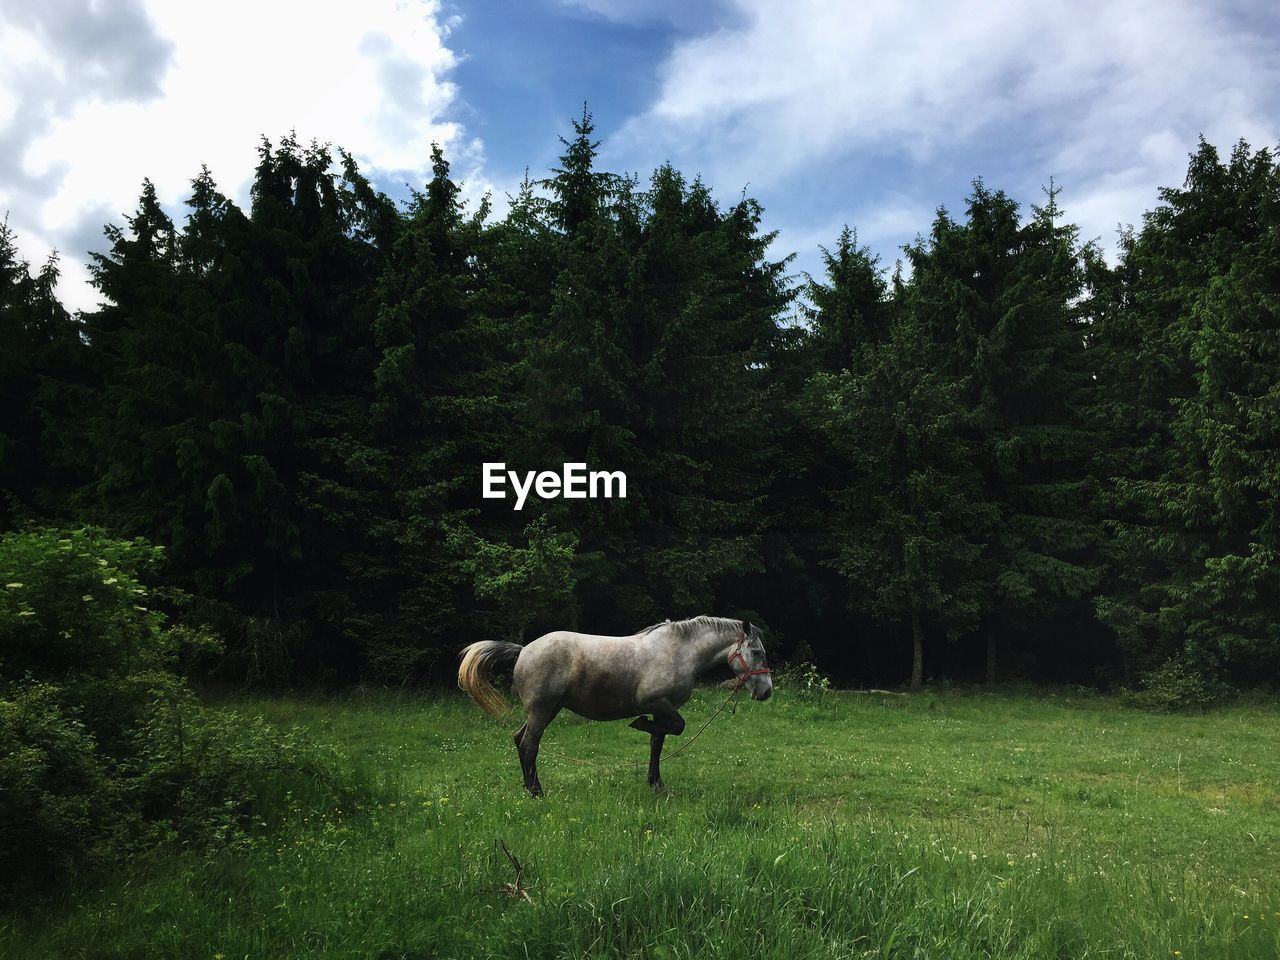 Horse on grassy field by trees against sky